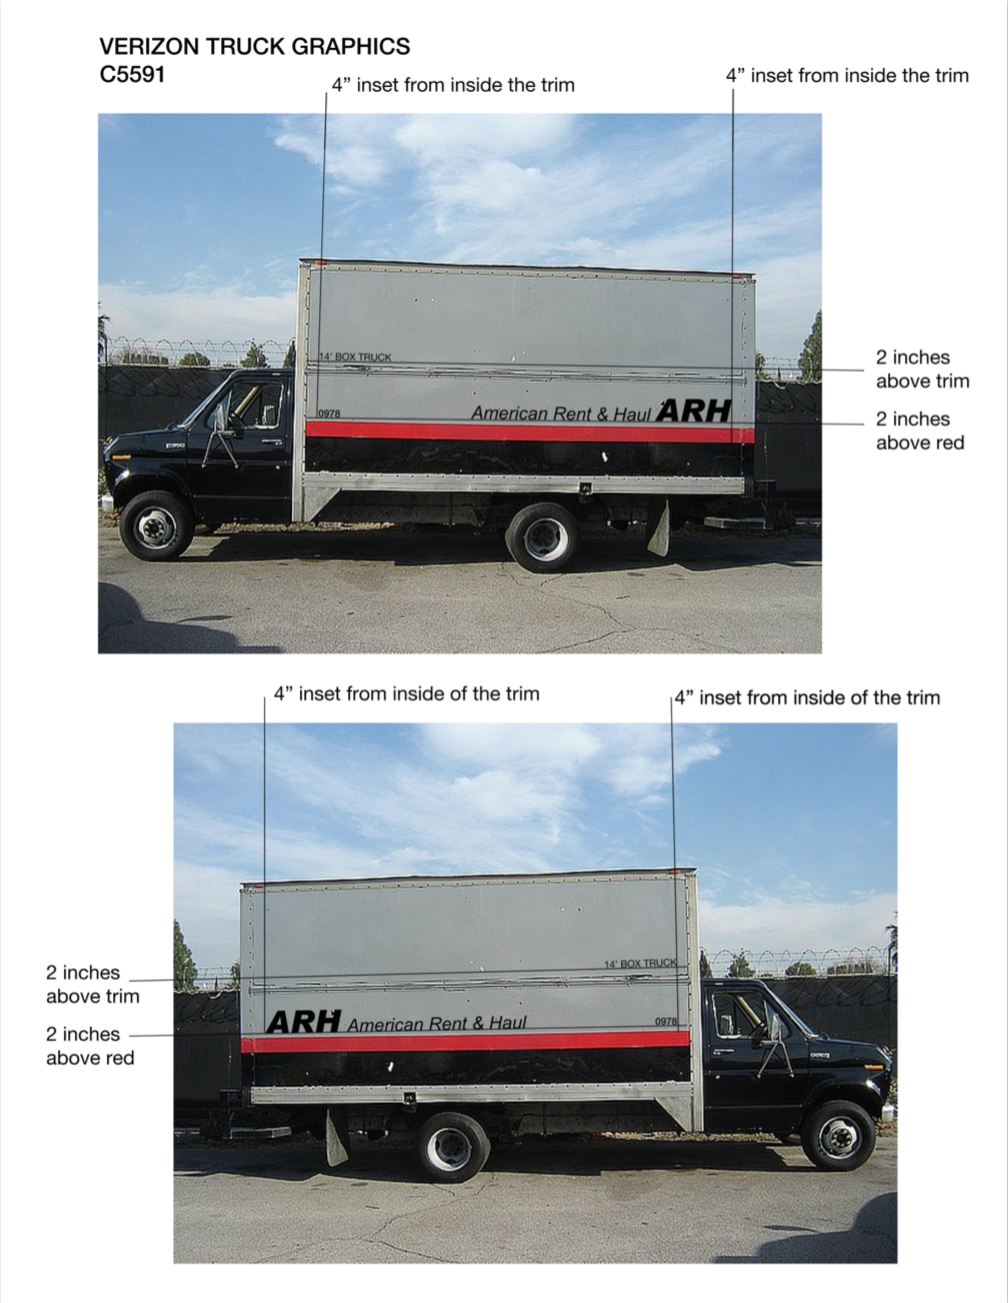 Verizon-TRUCK-PlacementReference-1.png